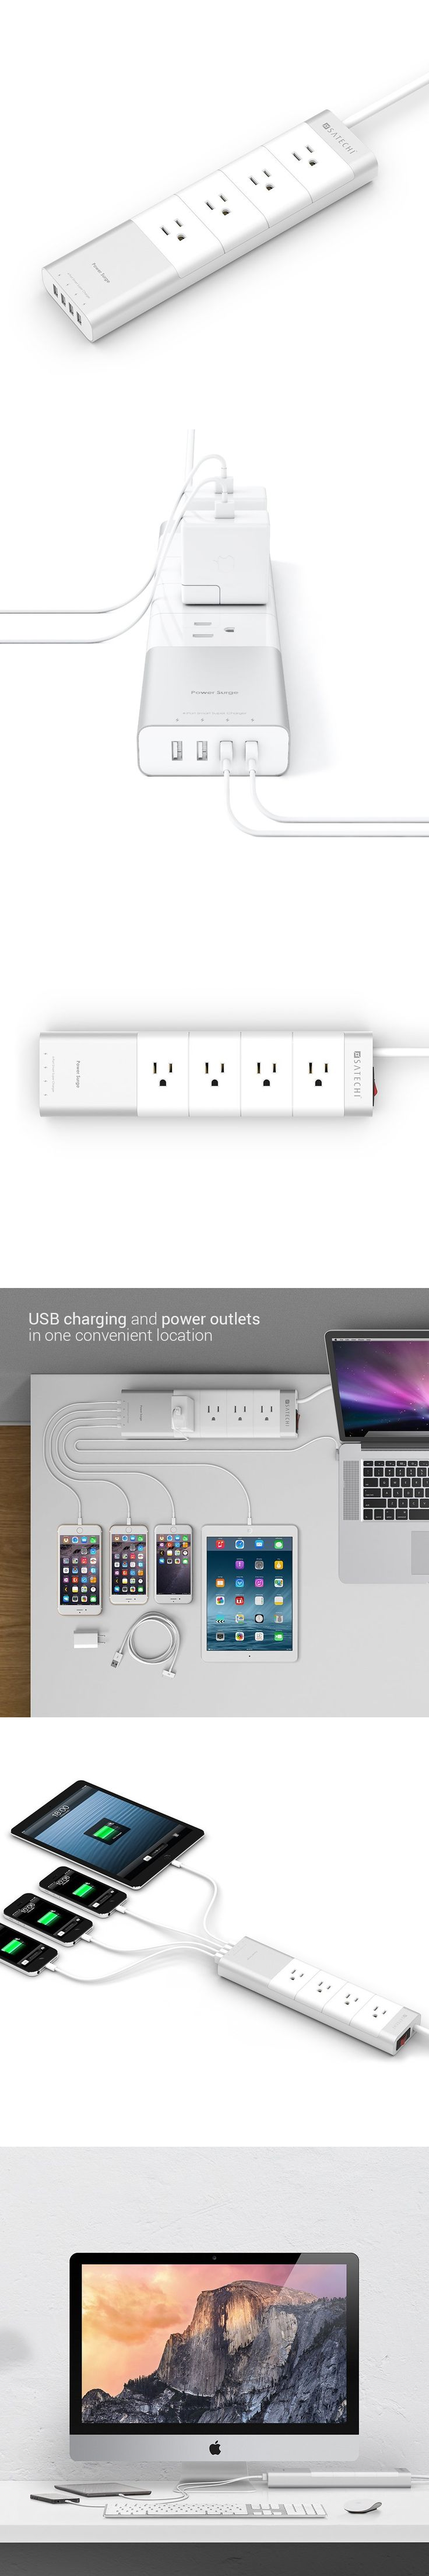 Keep all your power right where you need it with the Satechi Aluminum power strip. The 4 AC power outlets make it easy to conserve energy; equipped with IC smart technology, the strip automatically adjusts the power being used to match your devices' requirements. Plus, the 4 additional USB charging ports eliminate the restrictions caused by single-port wall adapter for easy clutter-free charging!